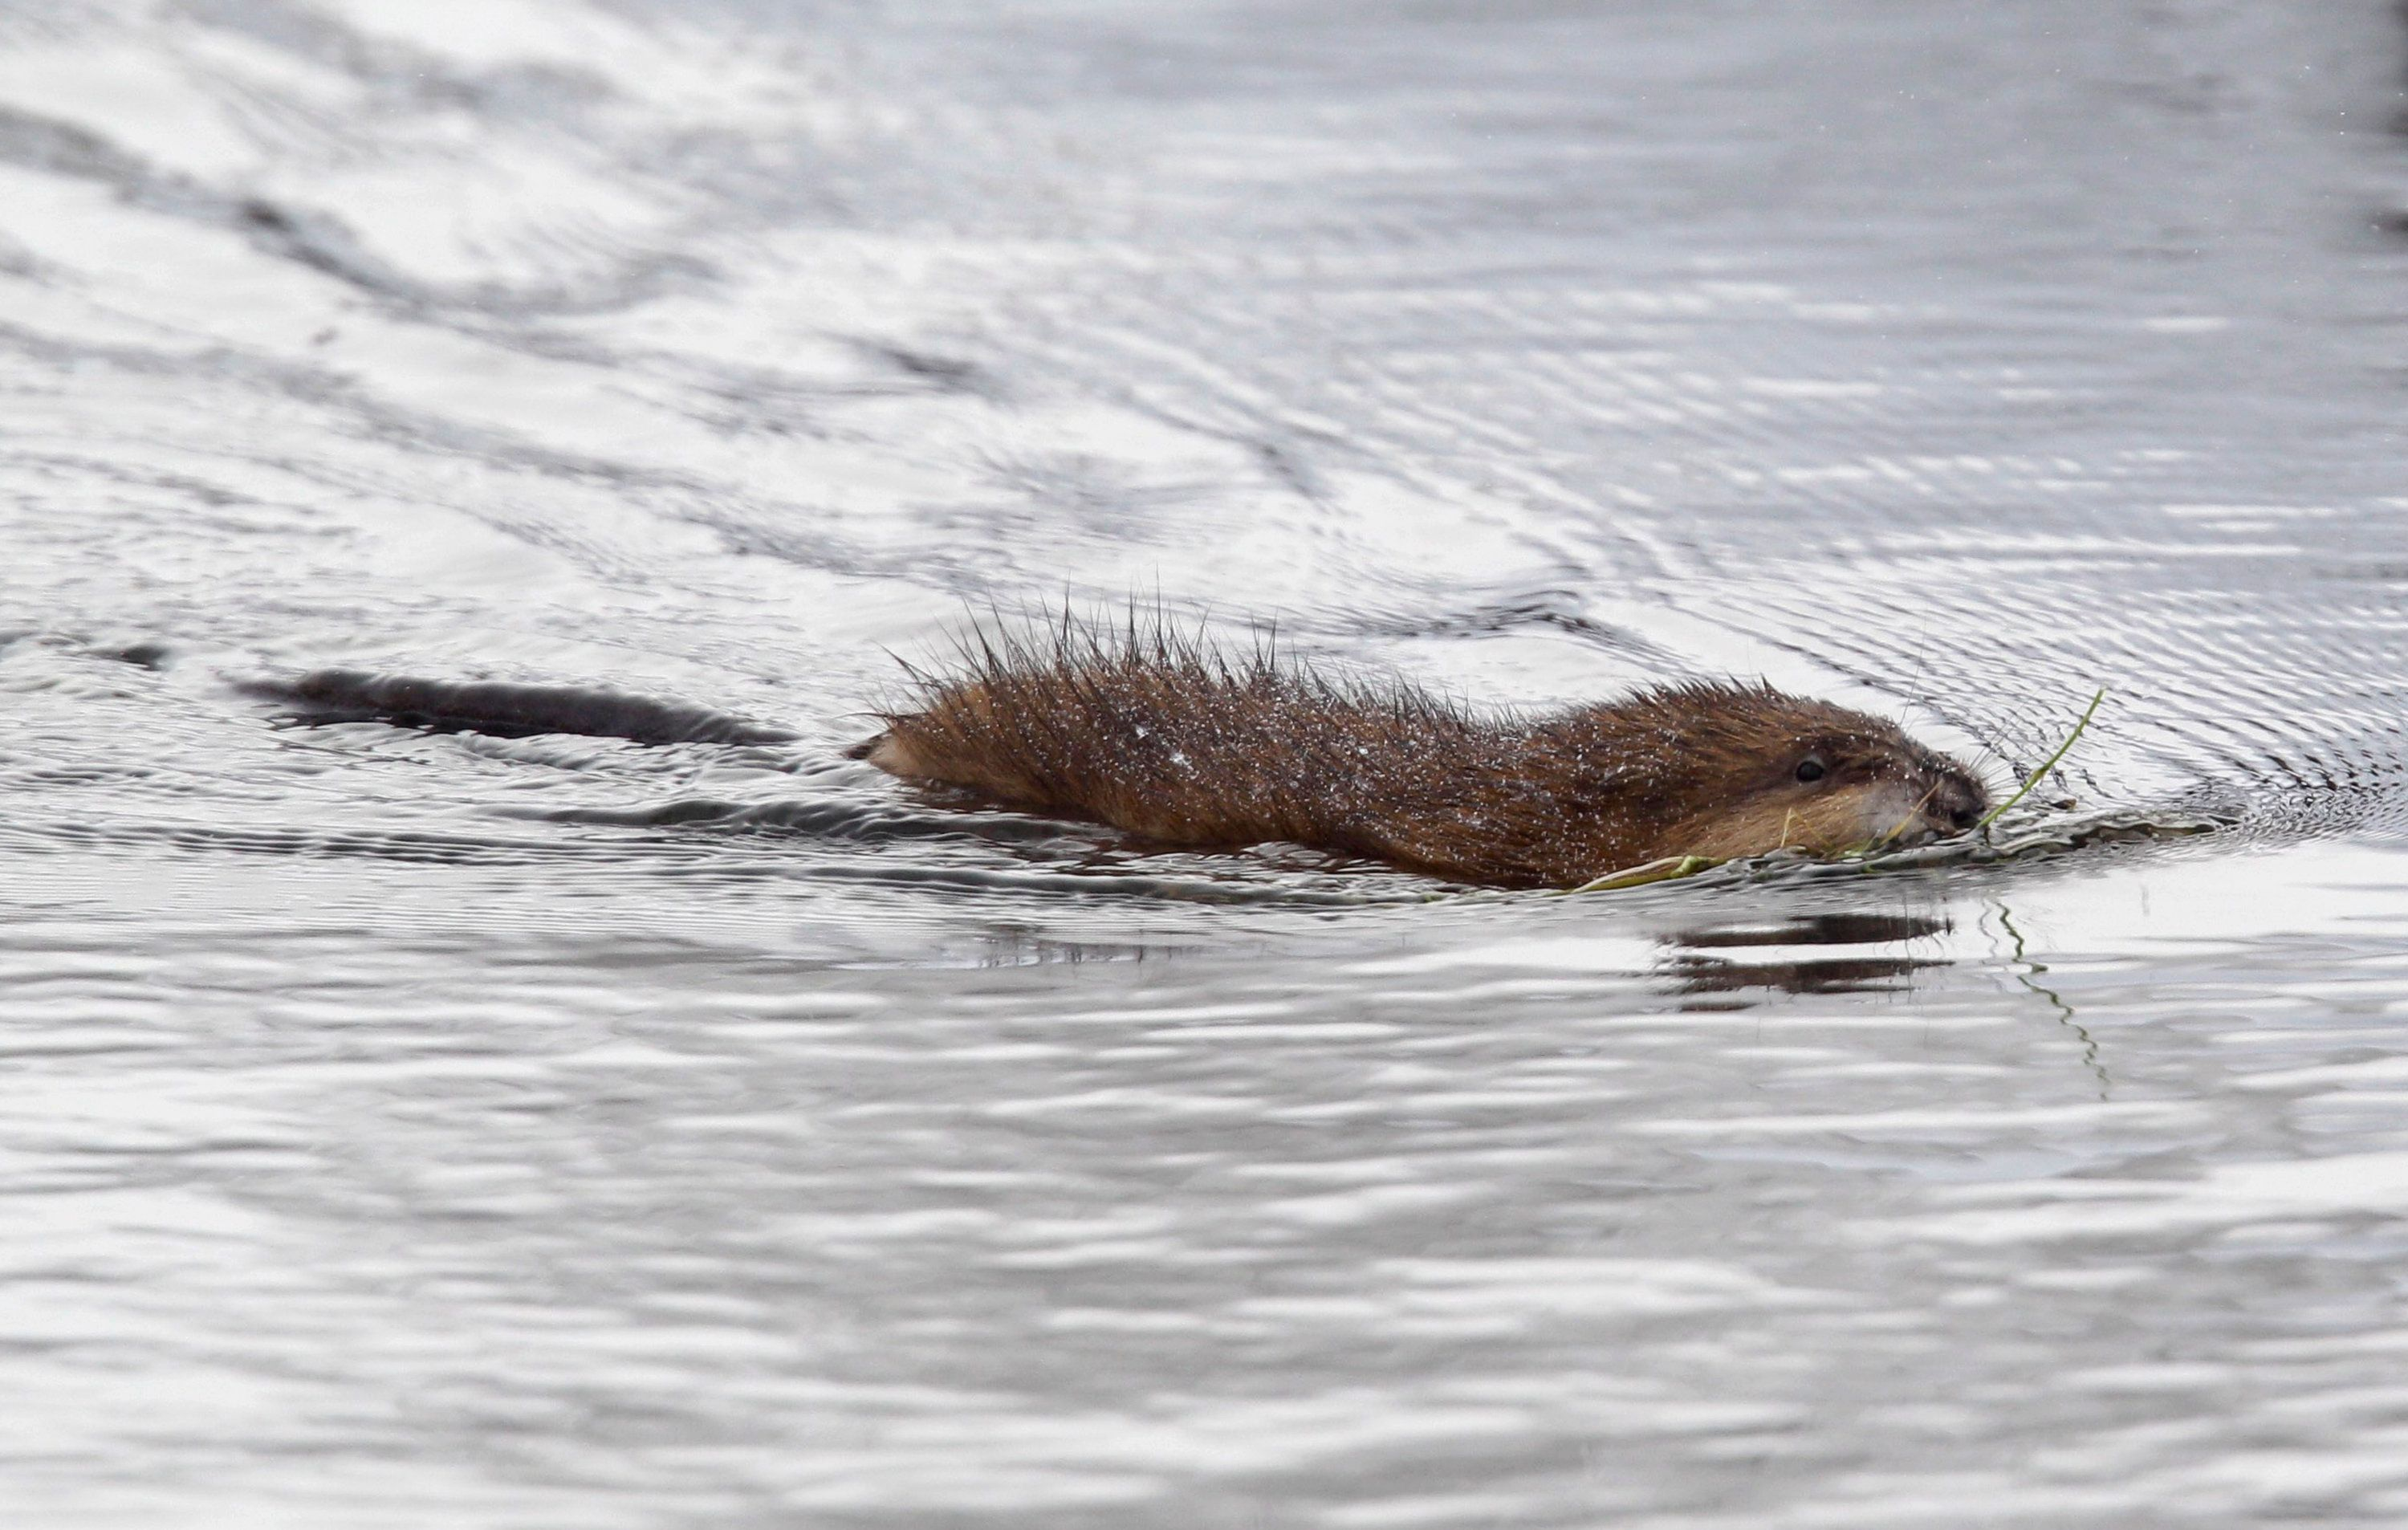 "FILE - In this Dec. 14, 2010, photo, a muskrat swims in a pond near Buffalo, N.Y. Roman Catholics in the Detroit area get a reprieve from their obligation to abstain from eating meat on Fridays during Lent. But only to dine on a certain rodent. The Archdiocese of Detroit says a long-standing permission dating to the region's missionary history in the 1700s allows local Catholics to eat muskrat ""on days of abstinence, including Fridays of Lent."" (AP Photo/David Duprey, File)"